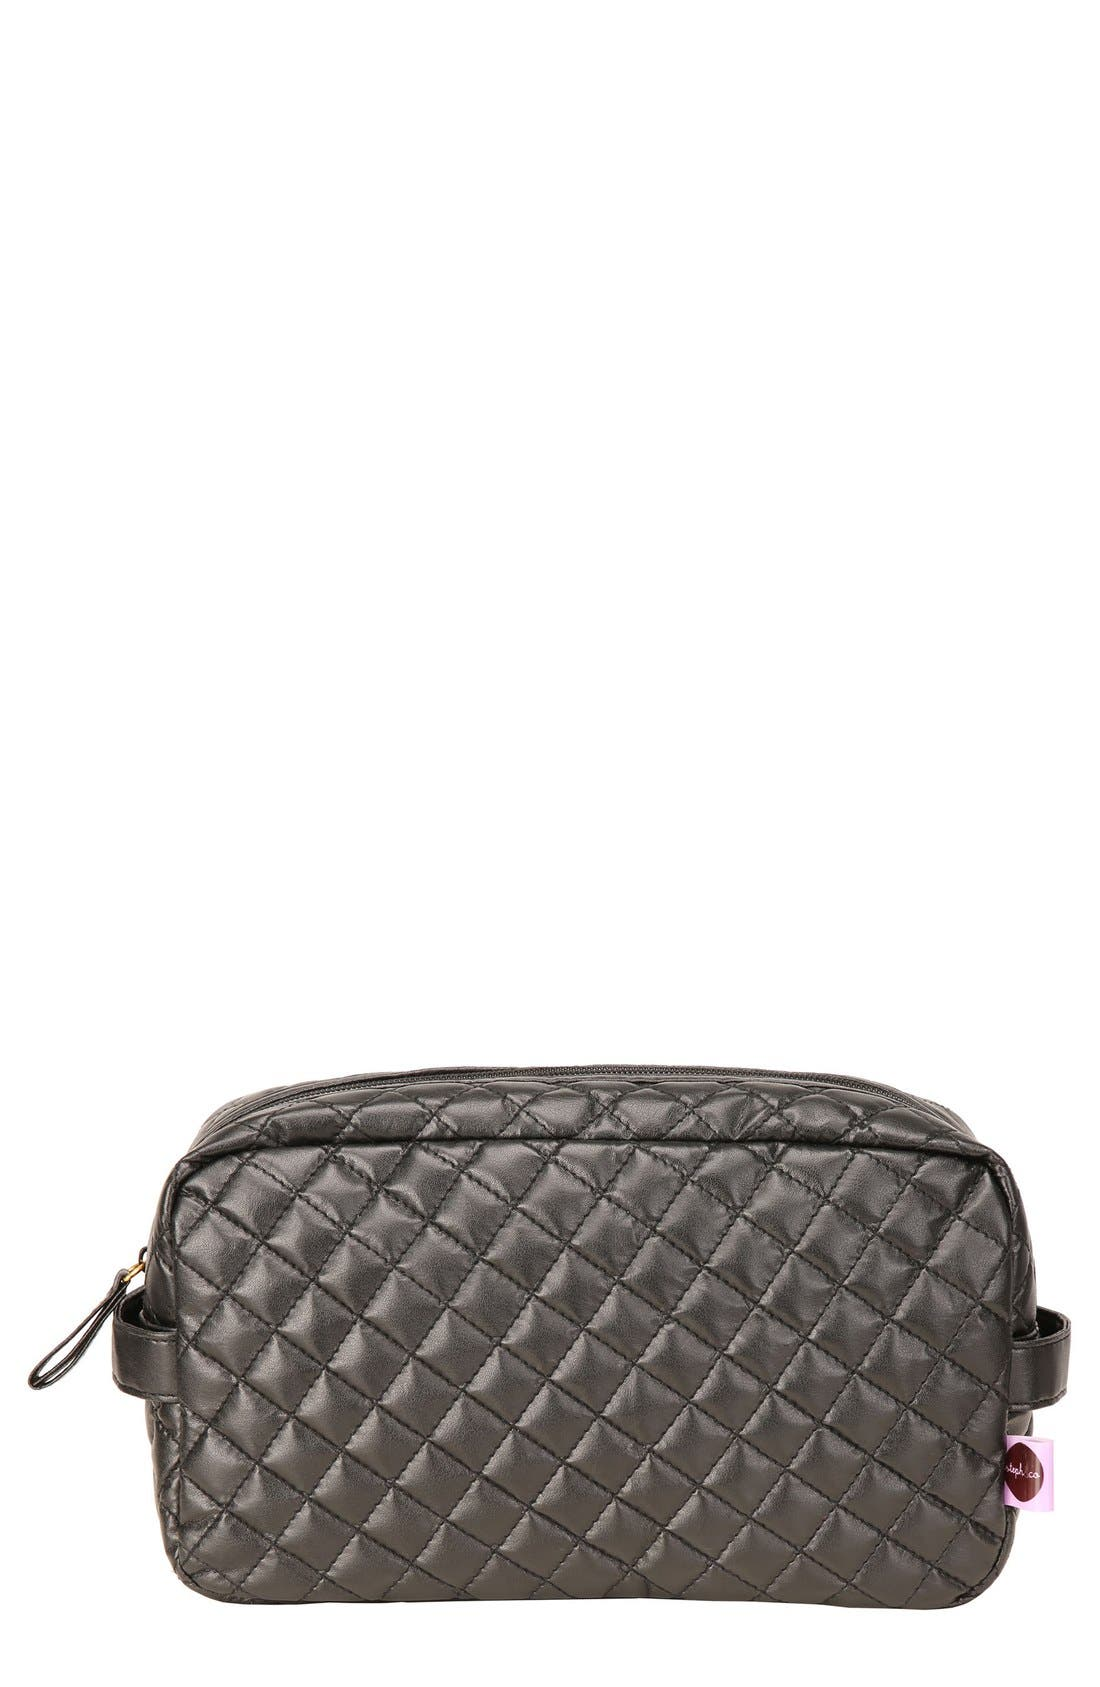 'Viveca' Quilted Black Cosmetics Case,                         Main,                         color, 000